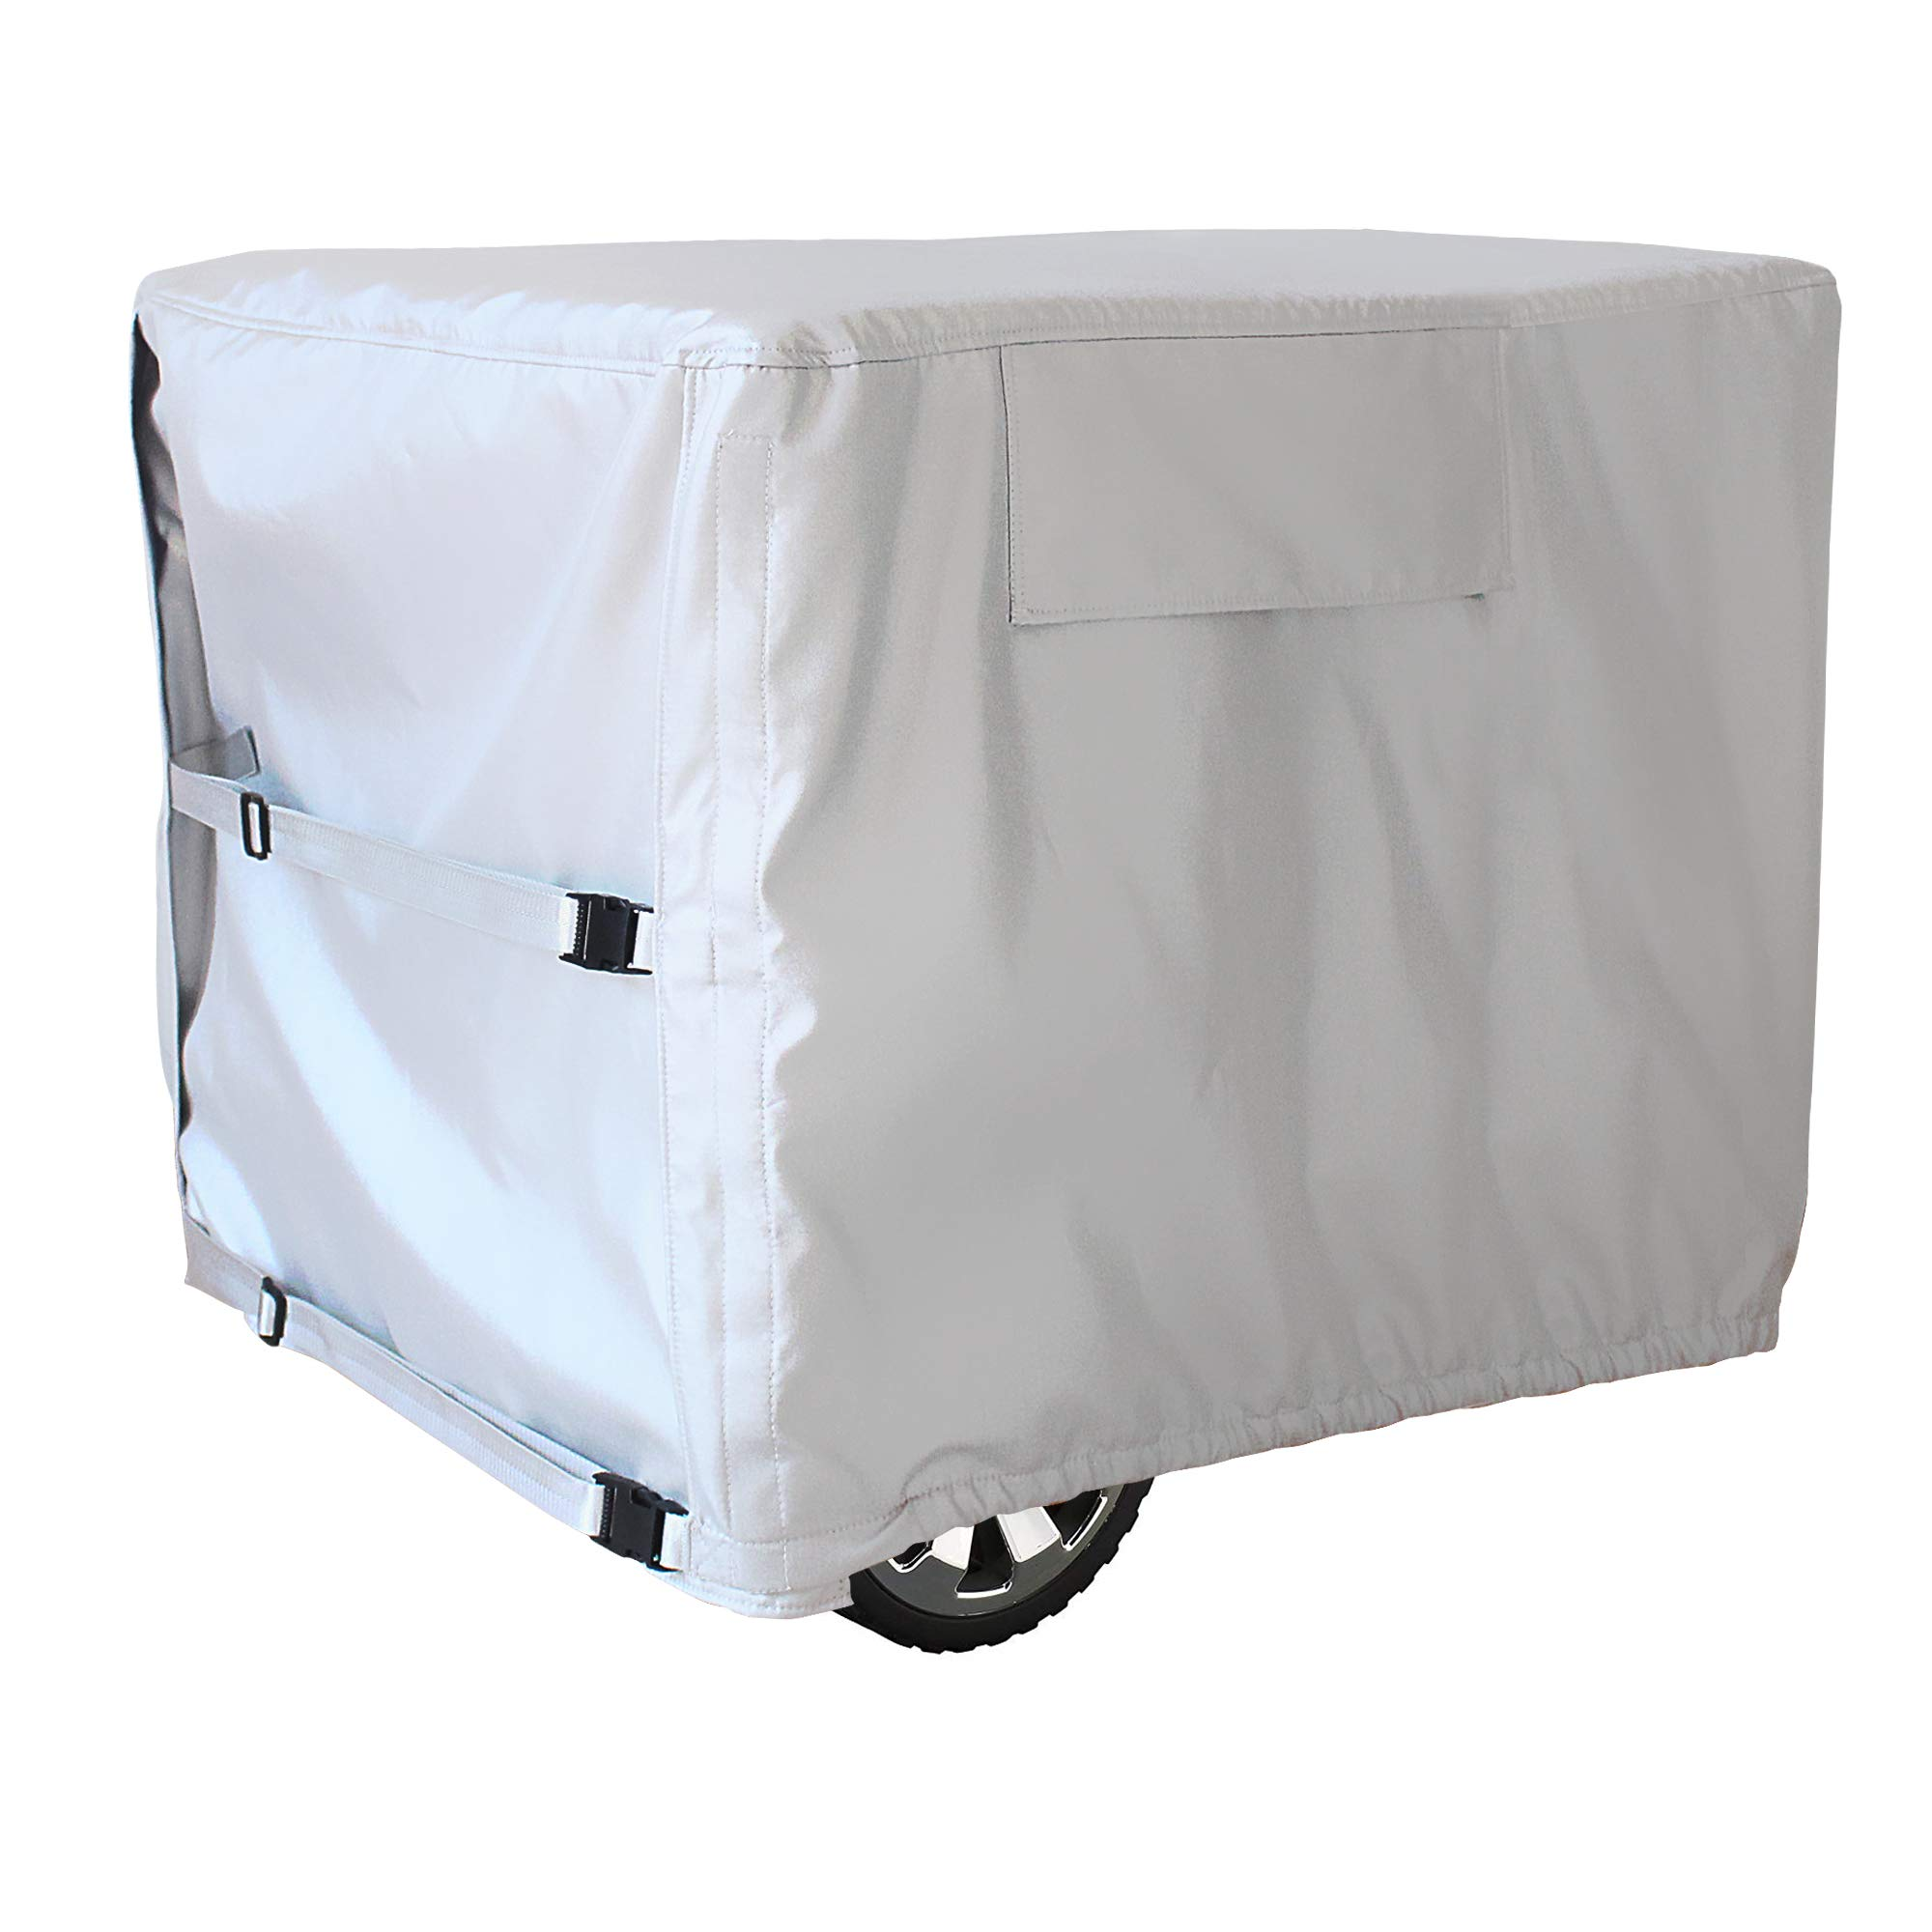 Mr.You 100% Waterproof Durable Universal Generator Cover-Heavy Duty Resistant Storage Cover,Fits Generators up to 28x38x30 inch,Sliver 5 Years Warranty